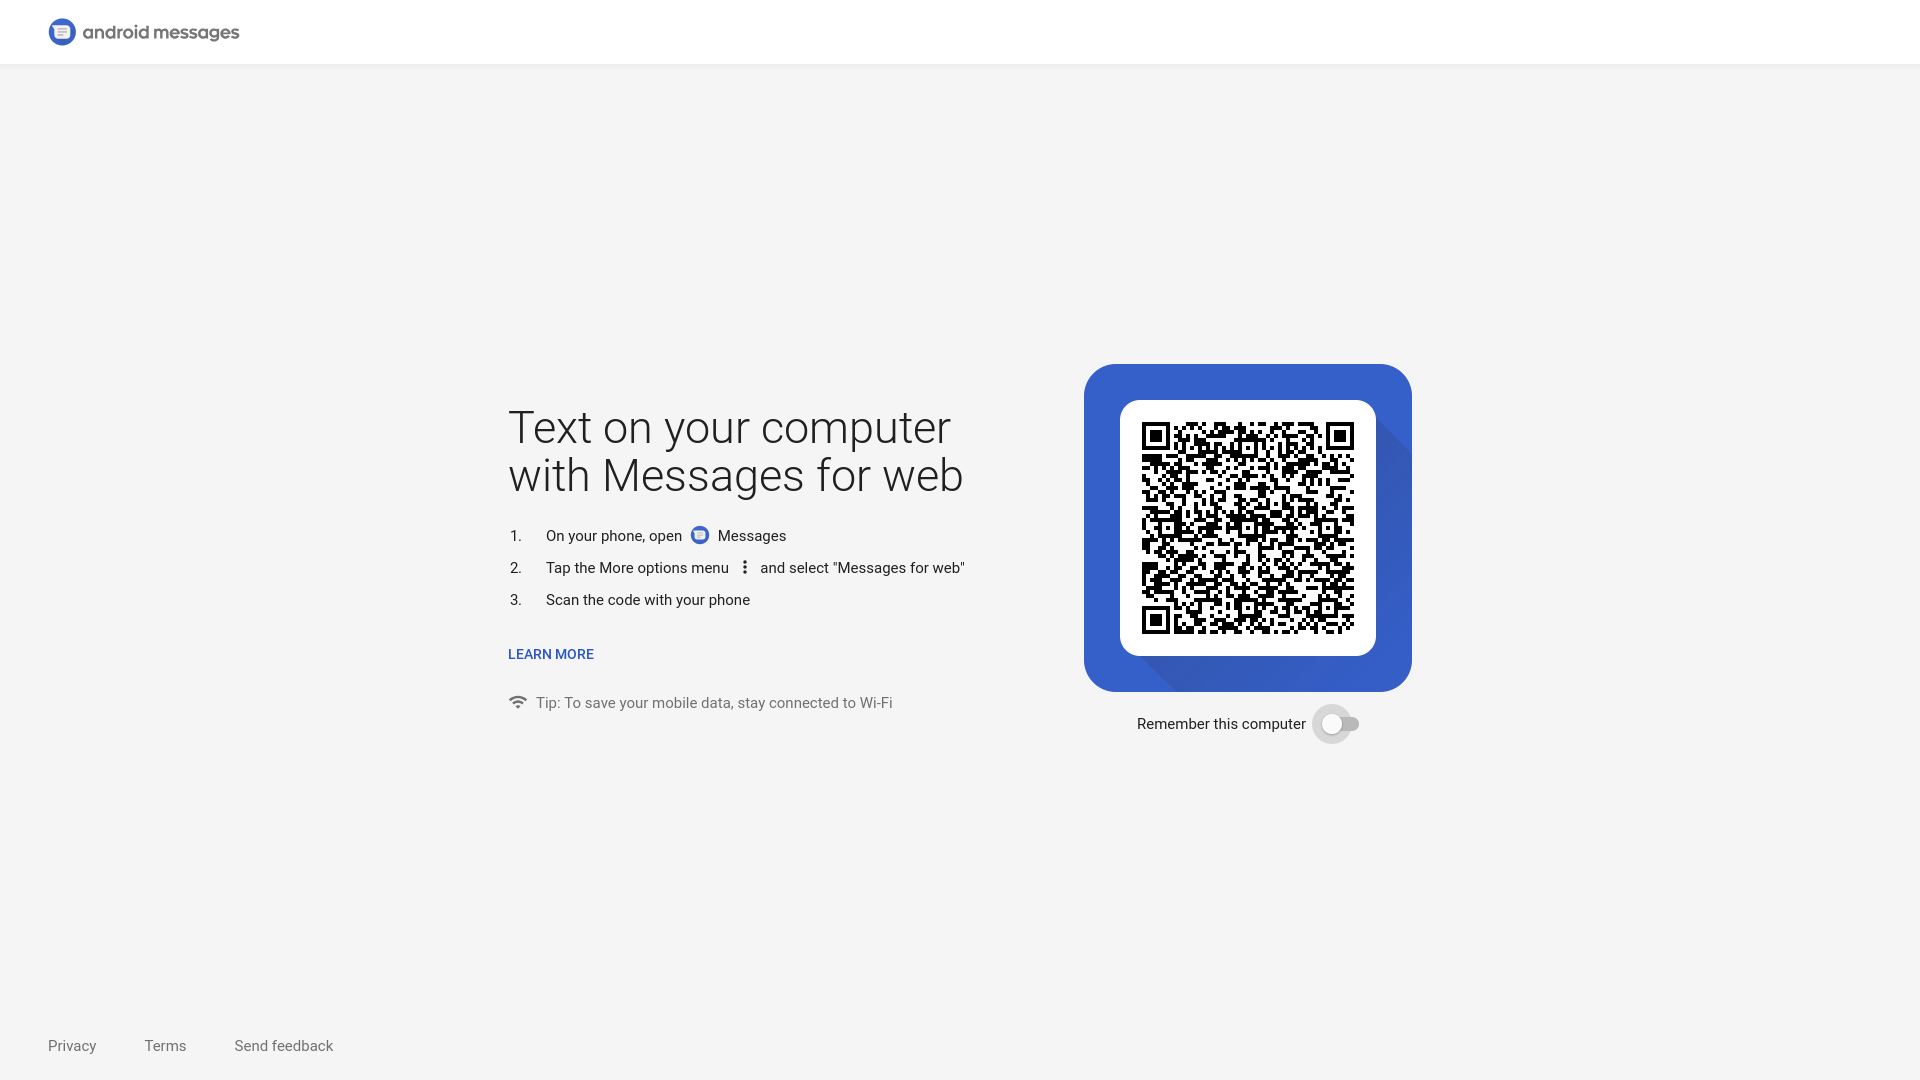 Android users can now message from the web